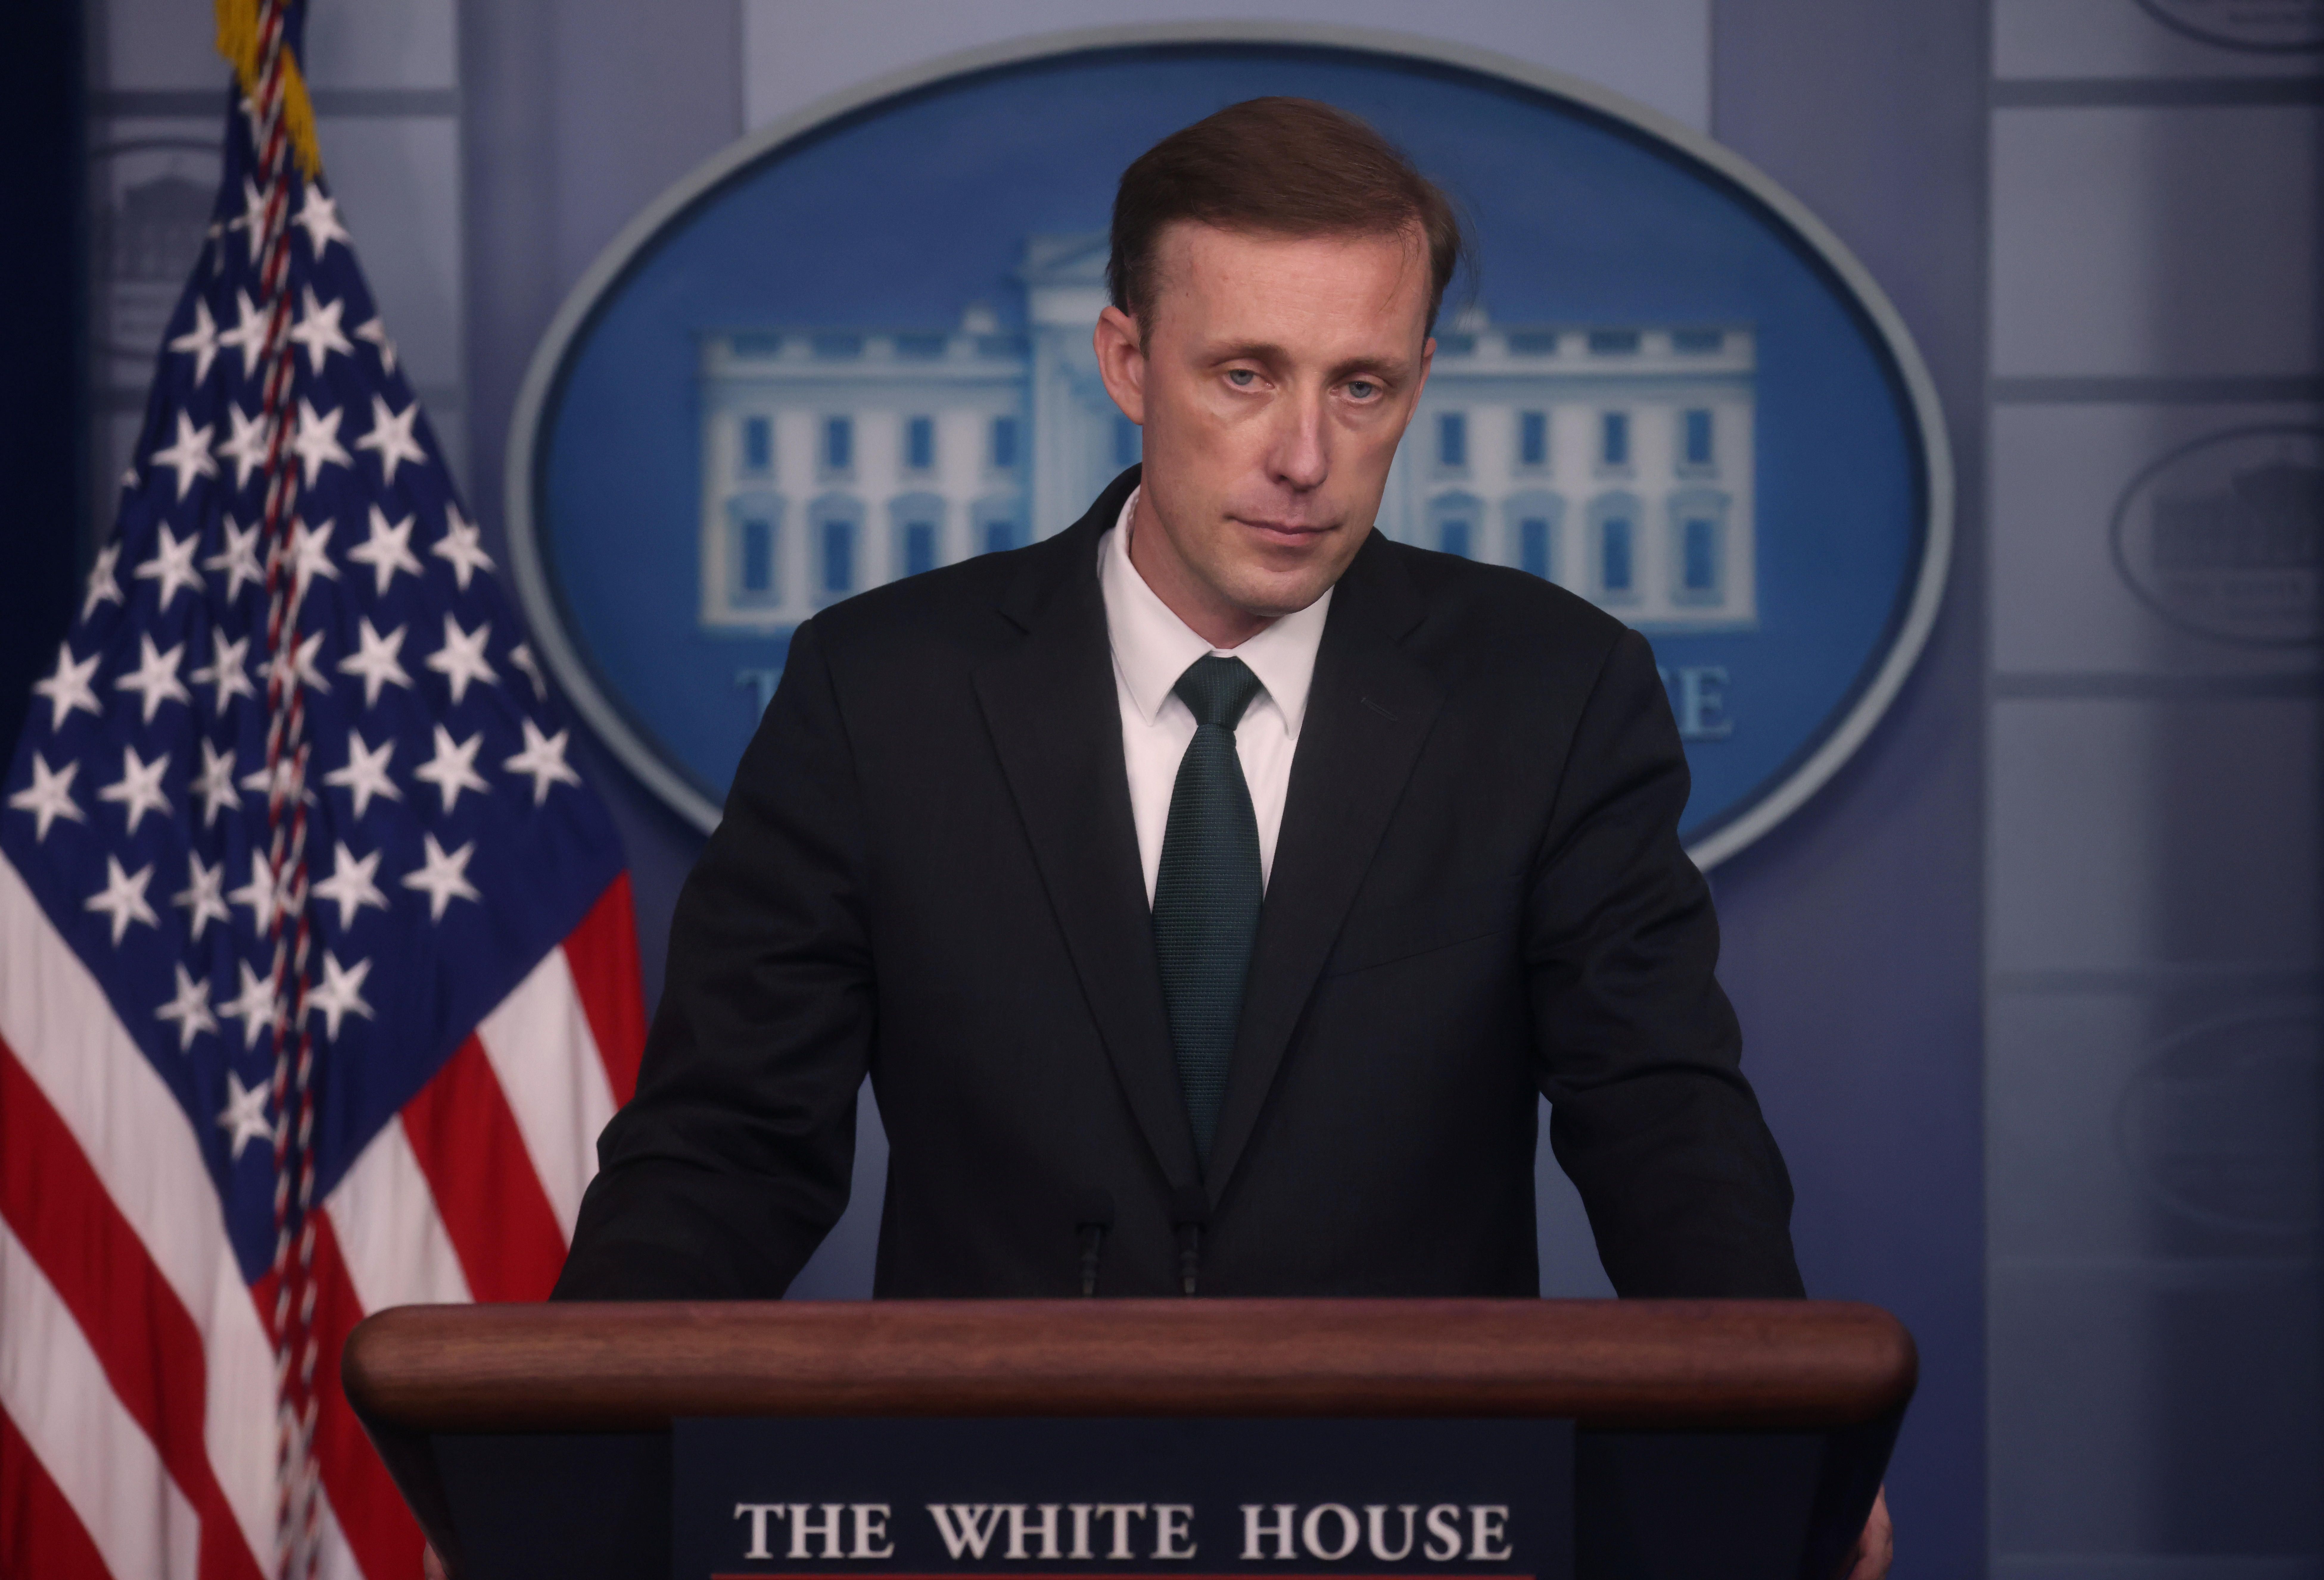 U.S. national security adviser Jake Sullivan holds a news briefing about the situation in Afghanistan at the White House in Washington, U.S., August 17, 2021. REUTERS/Leah Millis